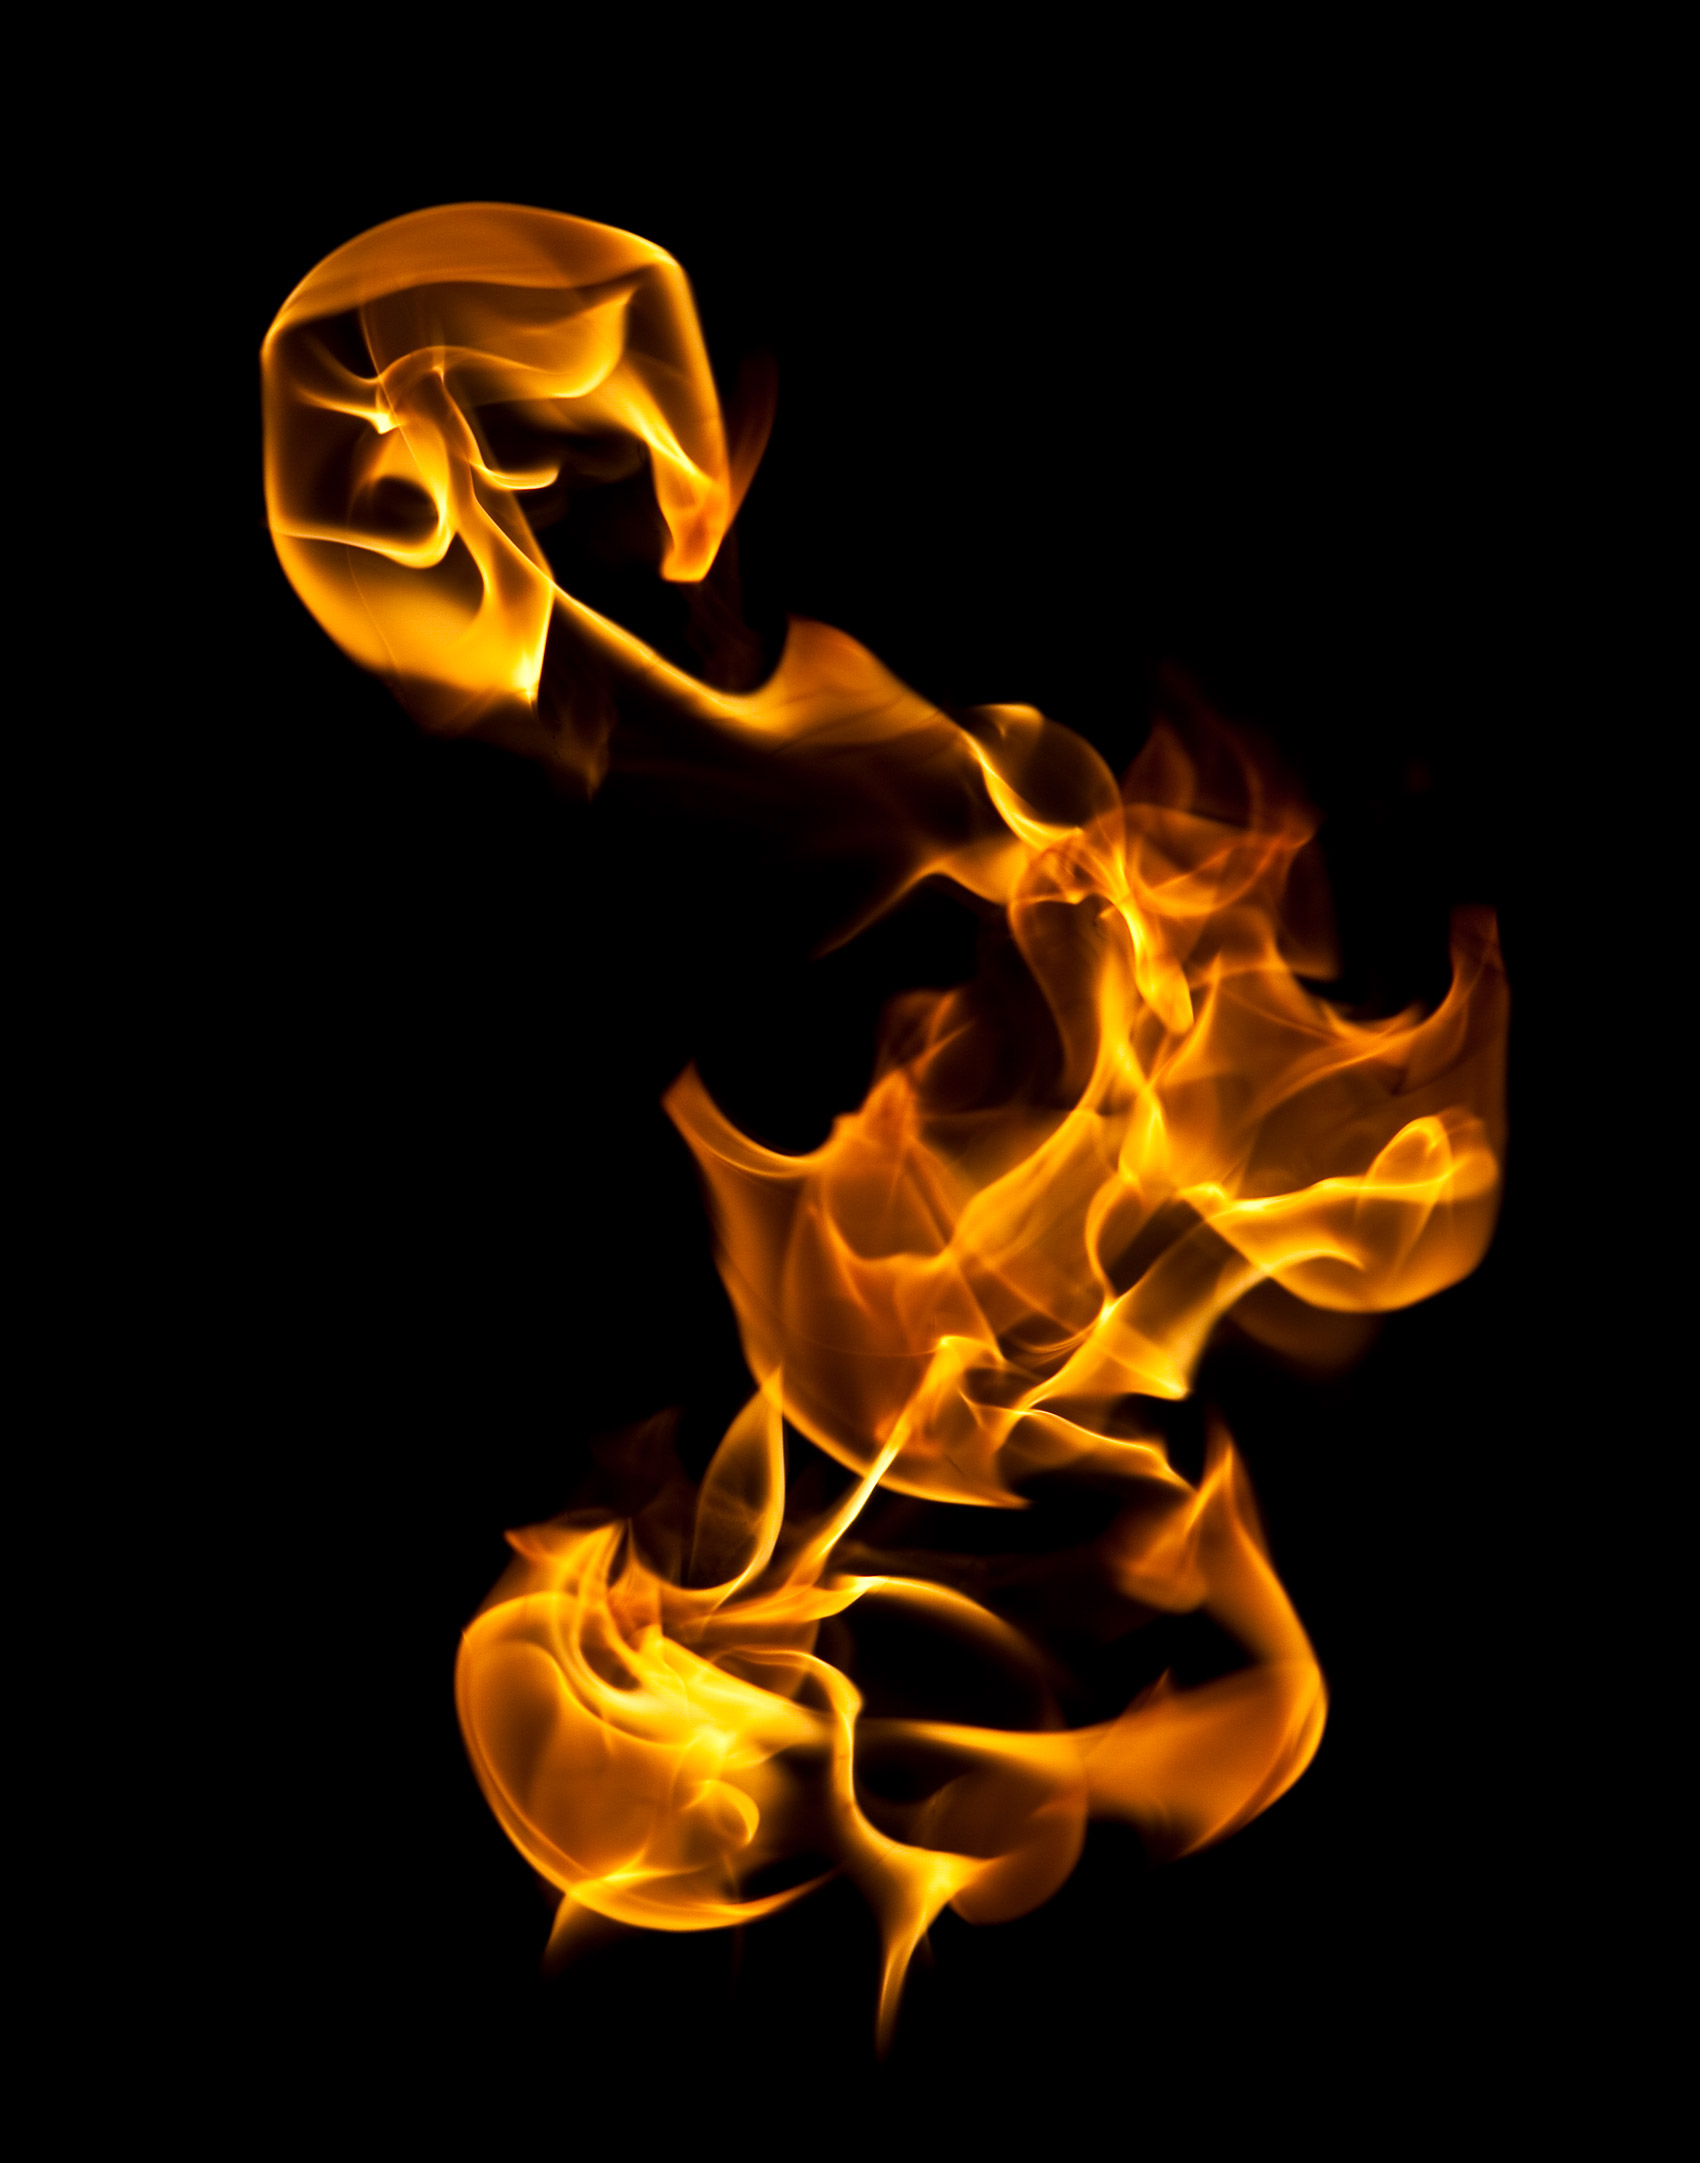 Fire Still Life Series